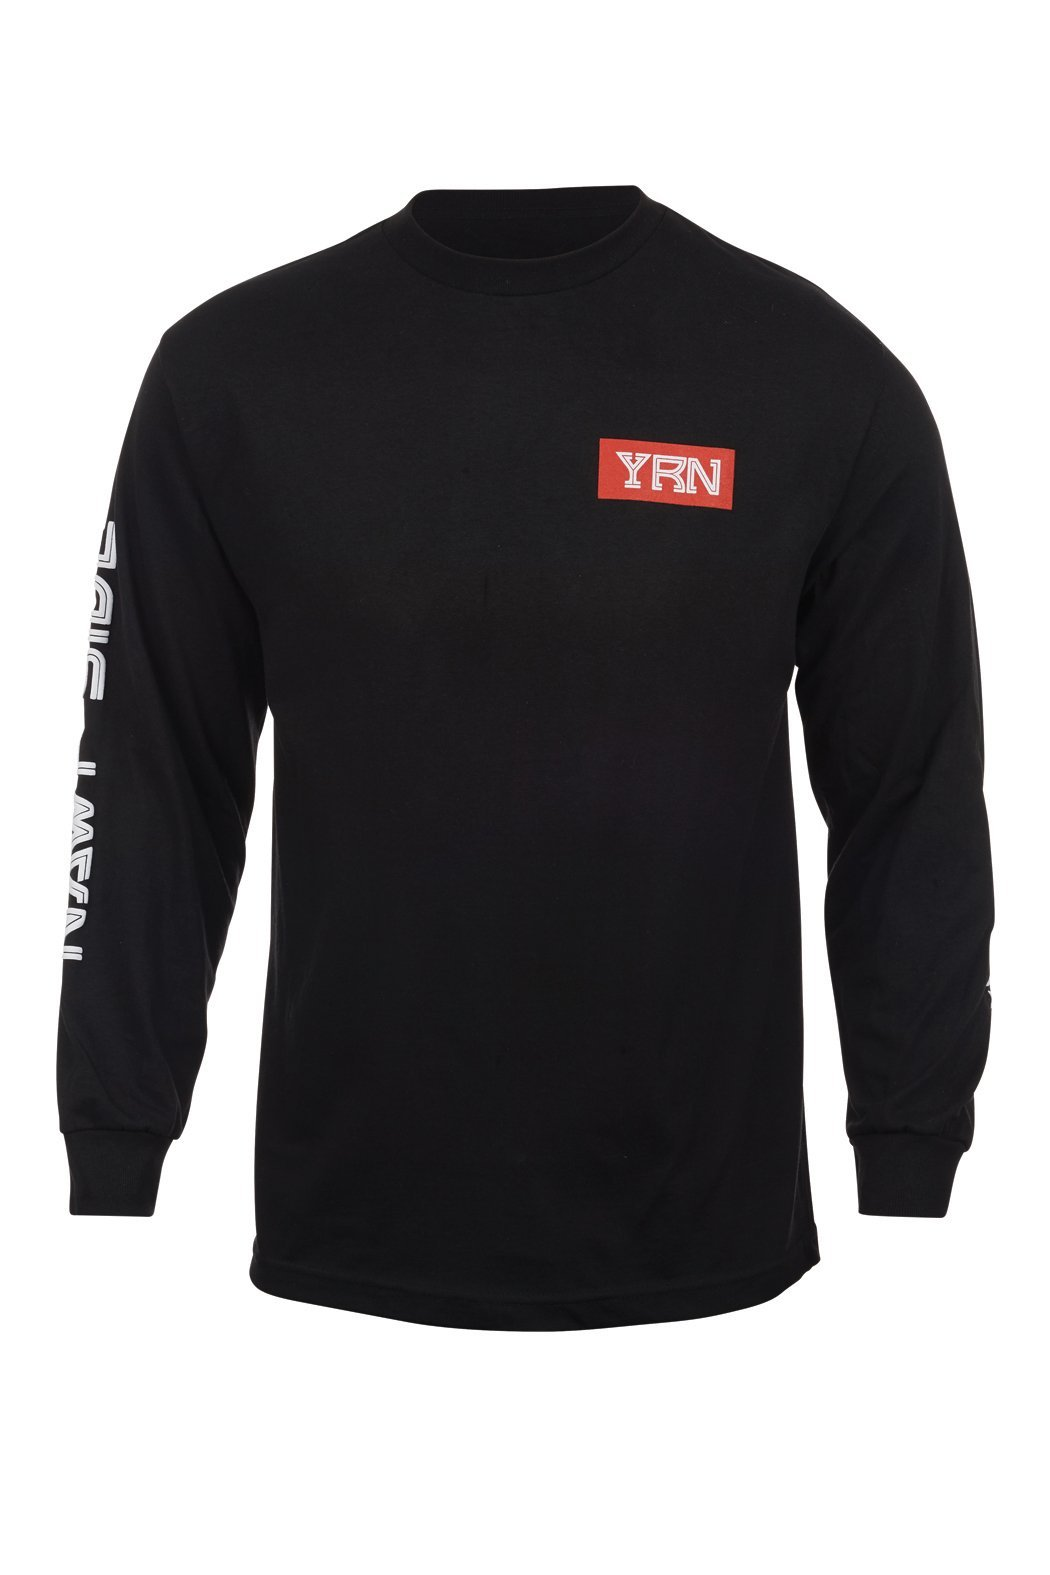 Yung Rich Nation Official Migos Clothing Brand- NAWF Side Long Sleeve Tee Shirt - Authentic